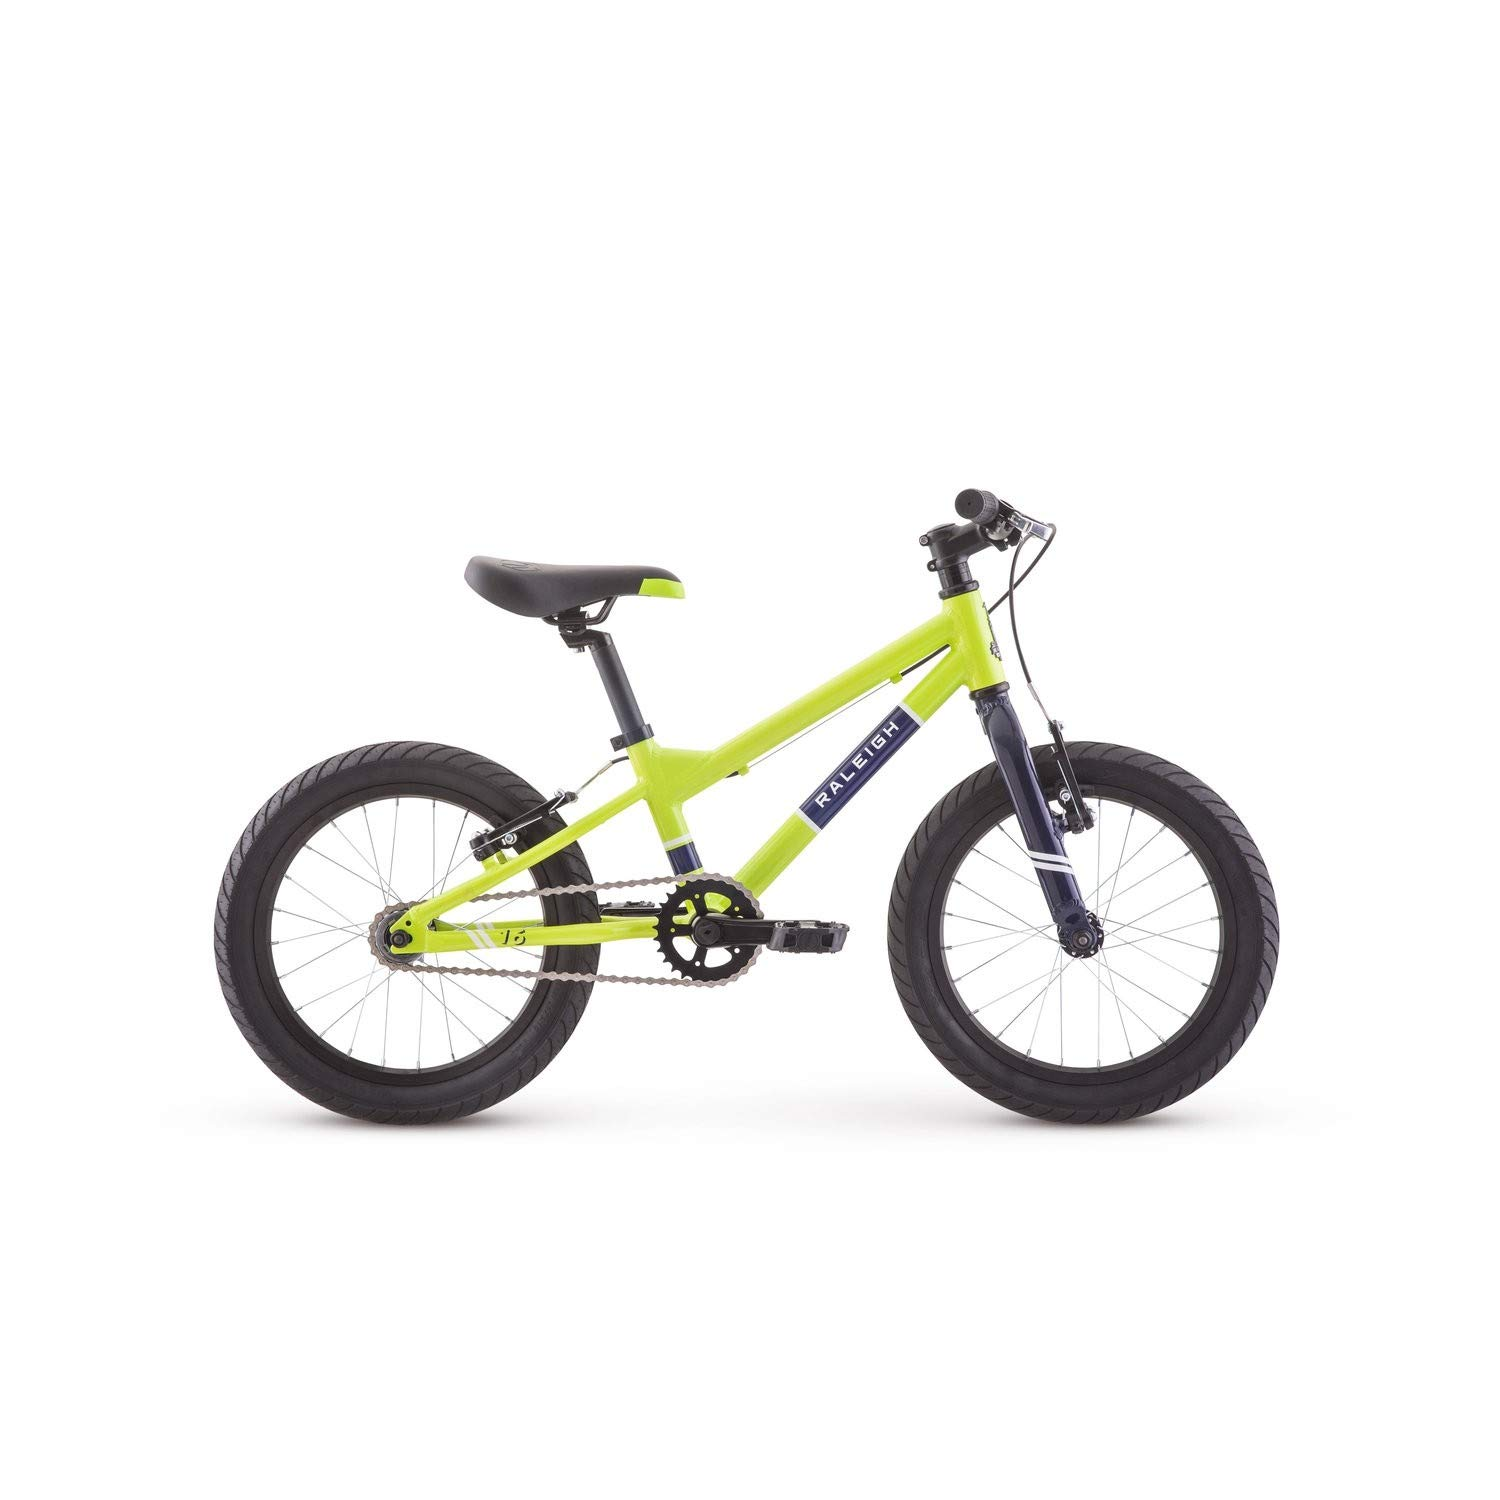 RALEIGH Bikes Rowdy 16 Kids Bike for Boys Youth 3-6 Years Old, Green